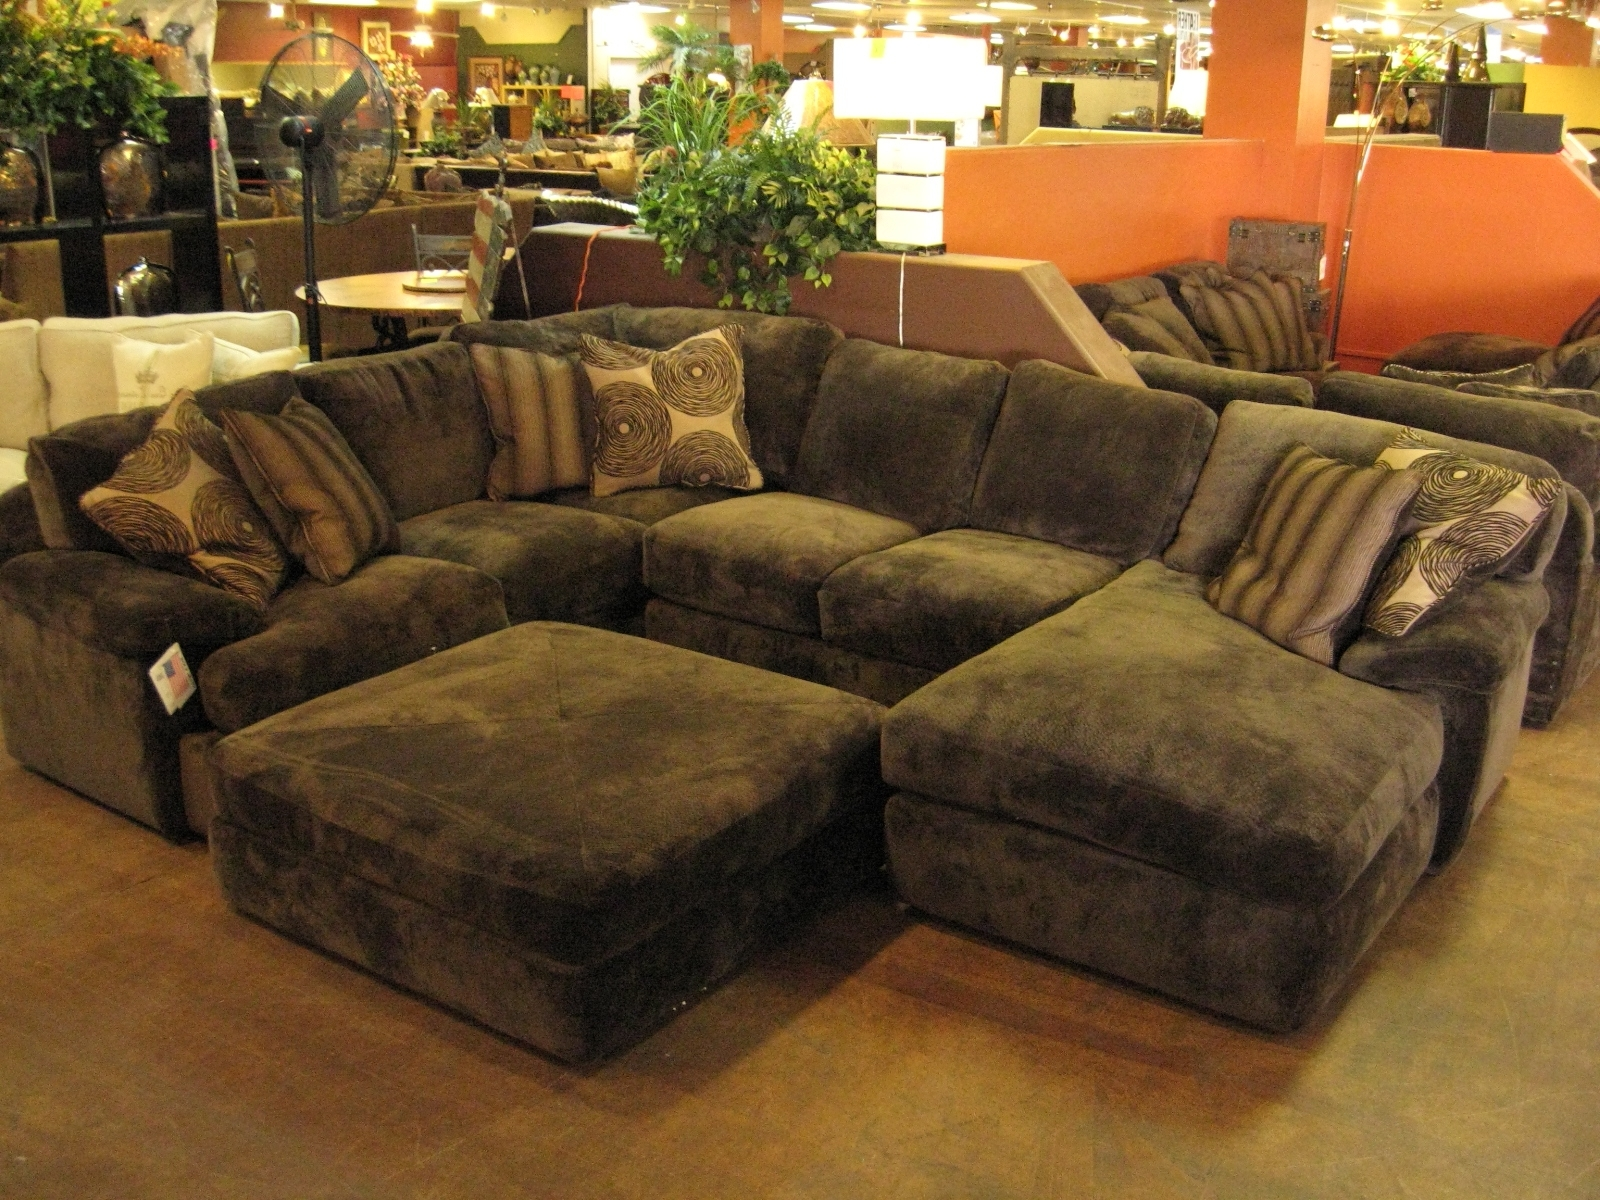 Most Current Black Velvet Fabric Sectional Sleeper Sofa With Chaise Lounge And Regarding Sectional Couches With Chaise (View 4 of 15)